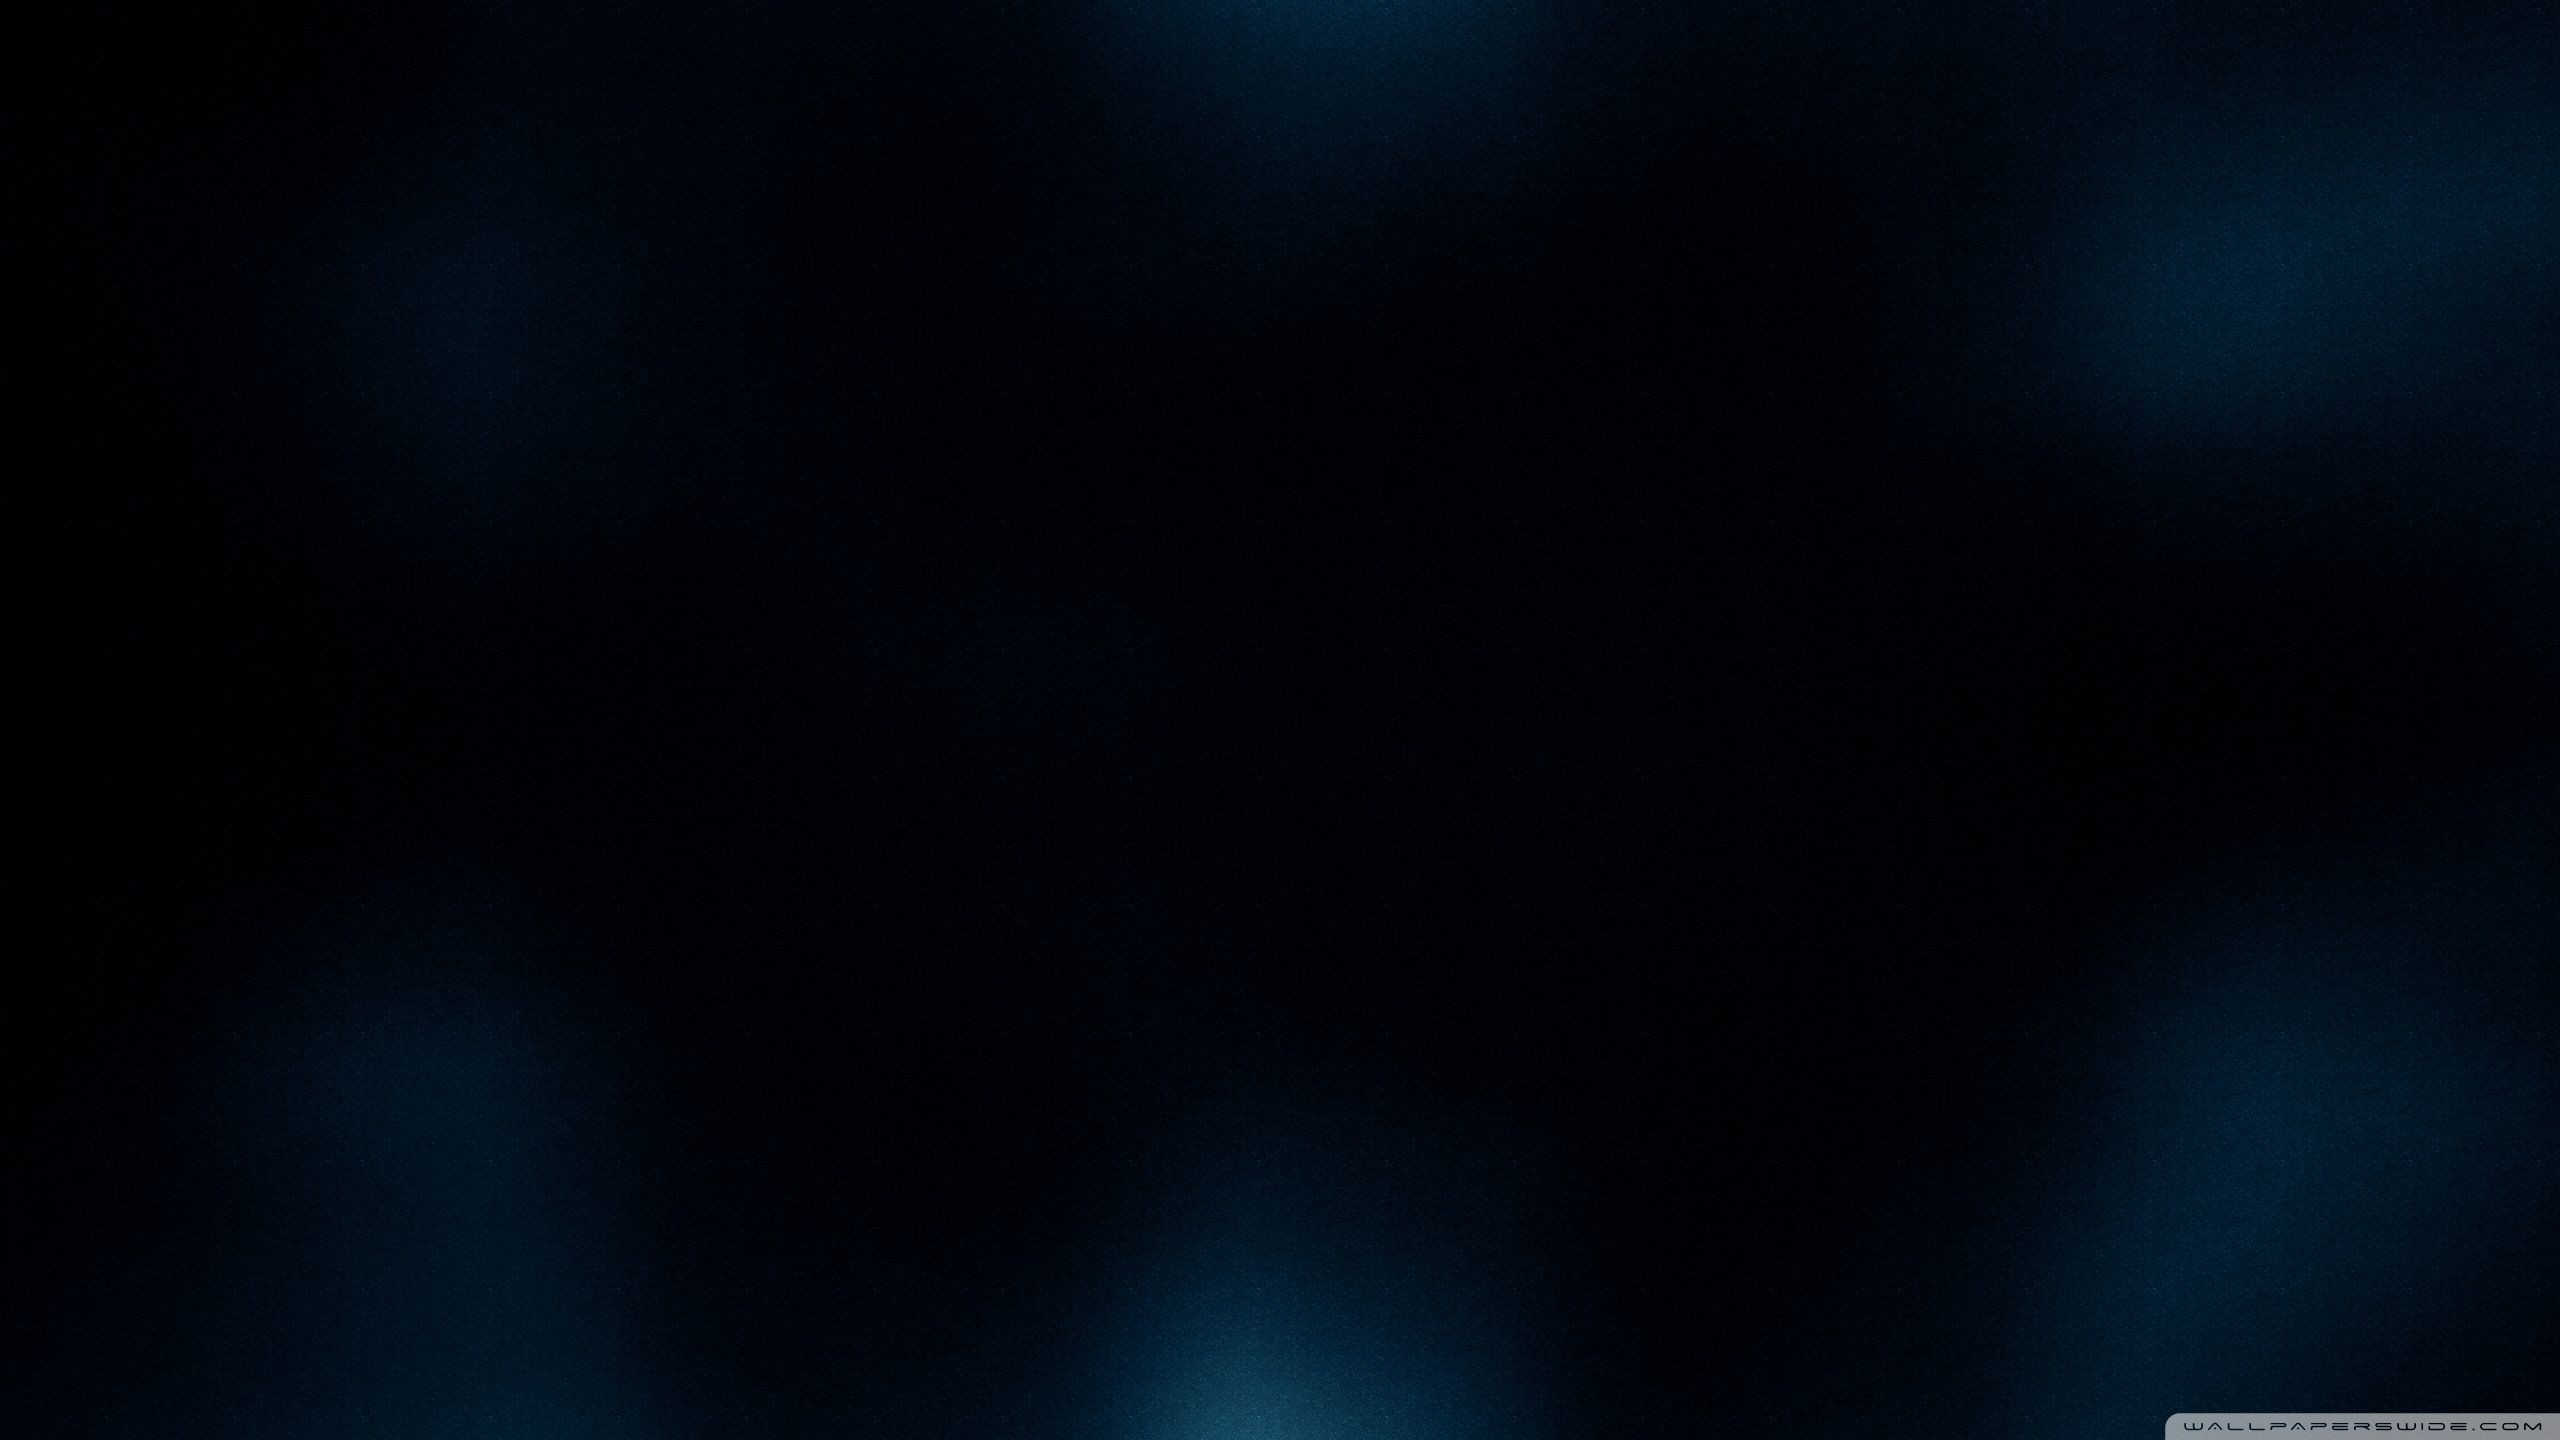 Wallpapers, Dark, Wallpaper, Space, Background, Color, Blue – 2008776